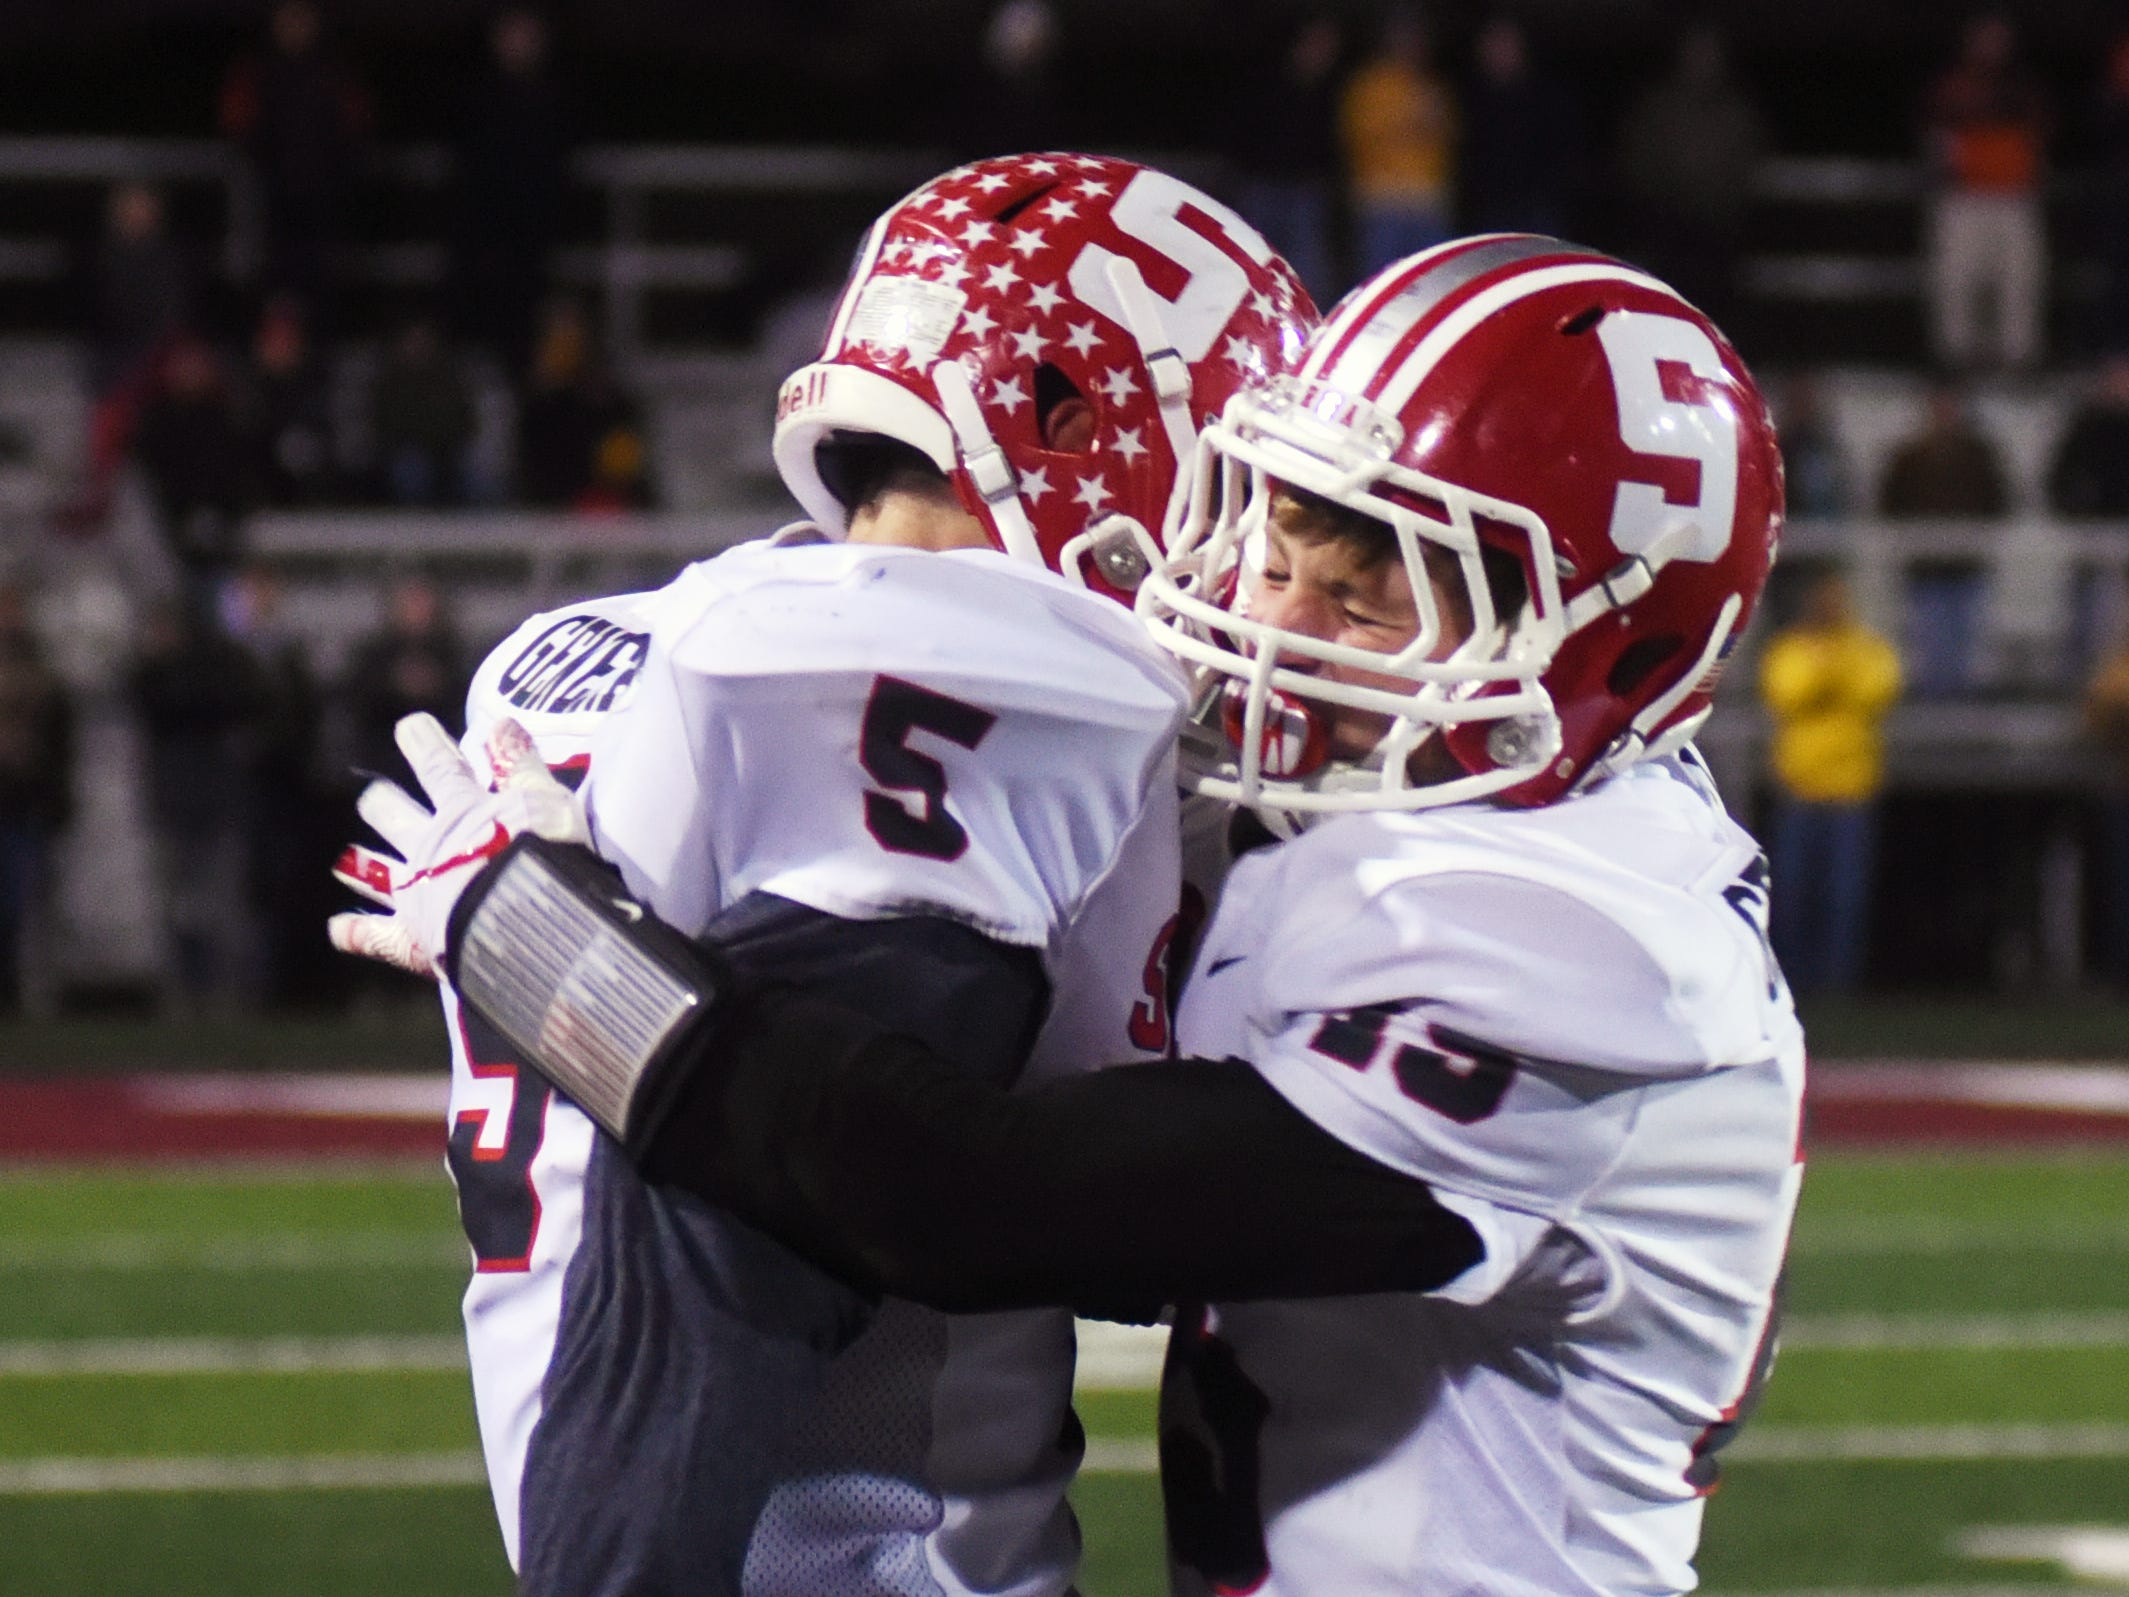 Shay Taylor, left, is congratulated by teammate Alec Ogle after intercepting a pass in the second quarter against Granville.